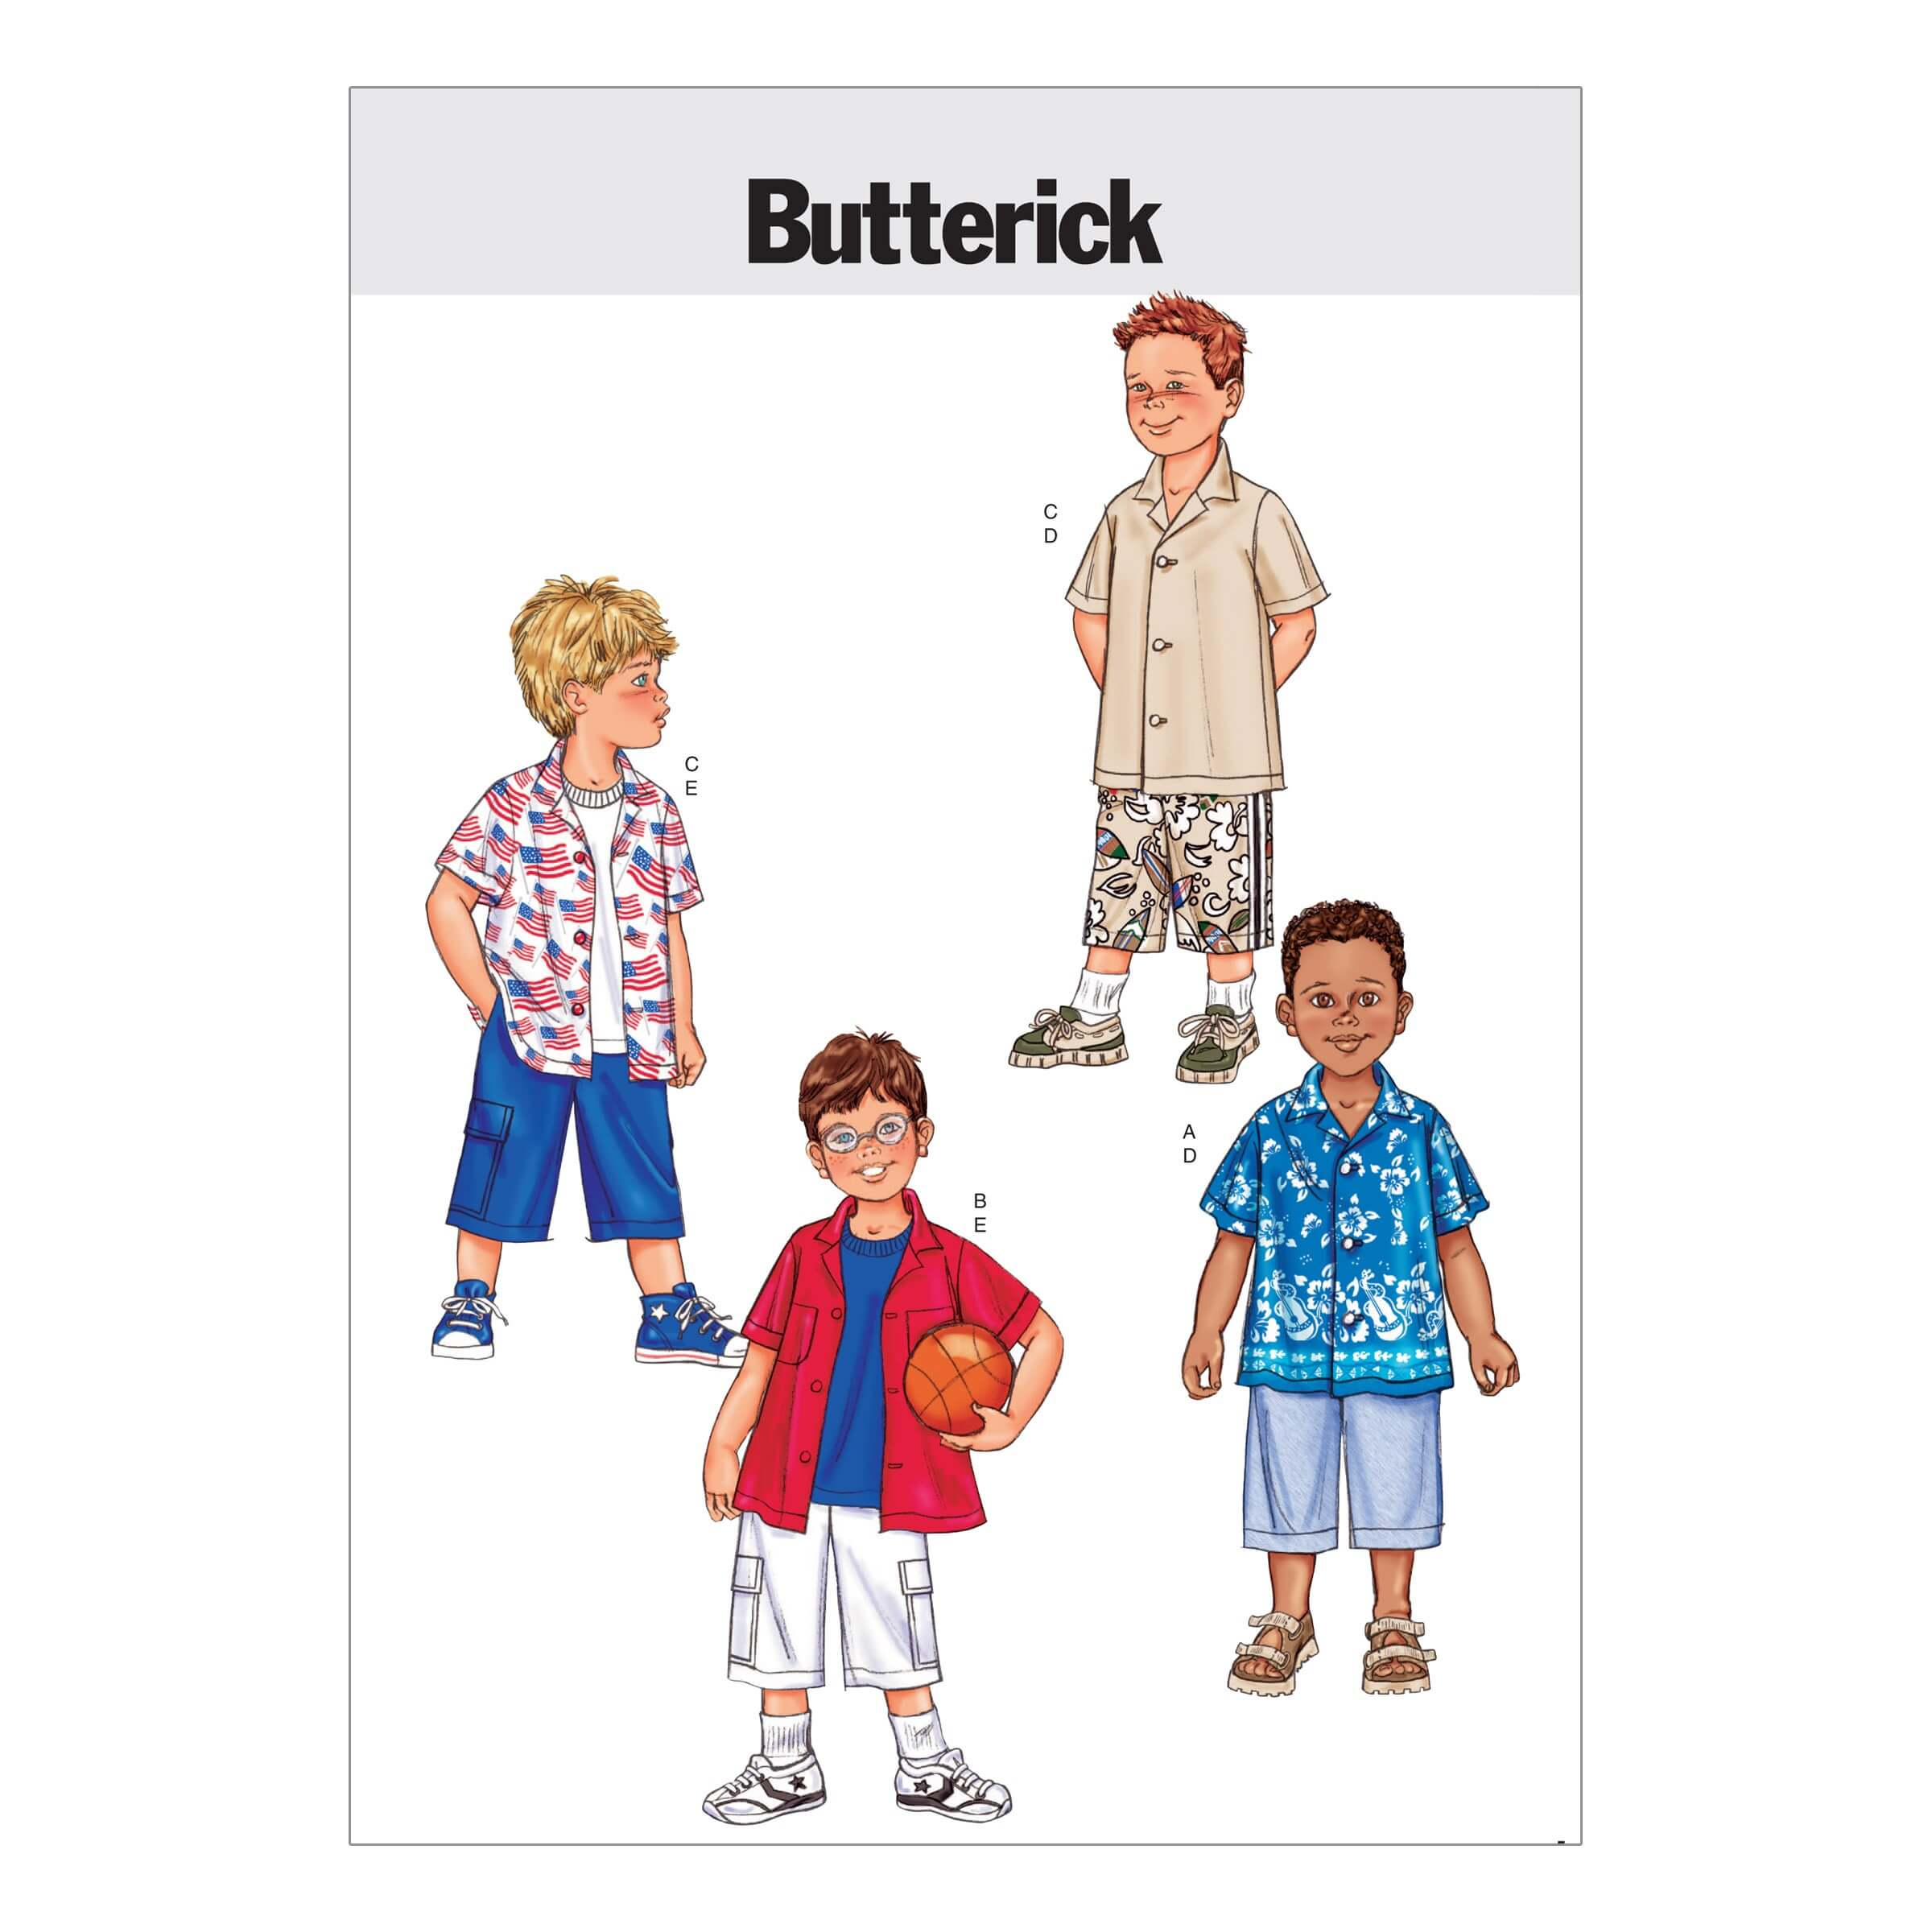 Butterick Sewing Pattern 3475 Childrens Short Sleeve Shirt & Shorts Smart Casual